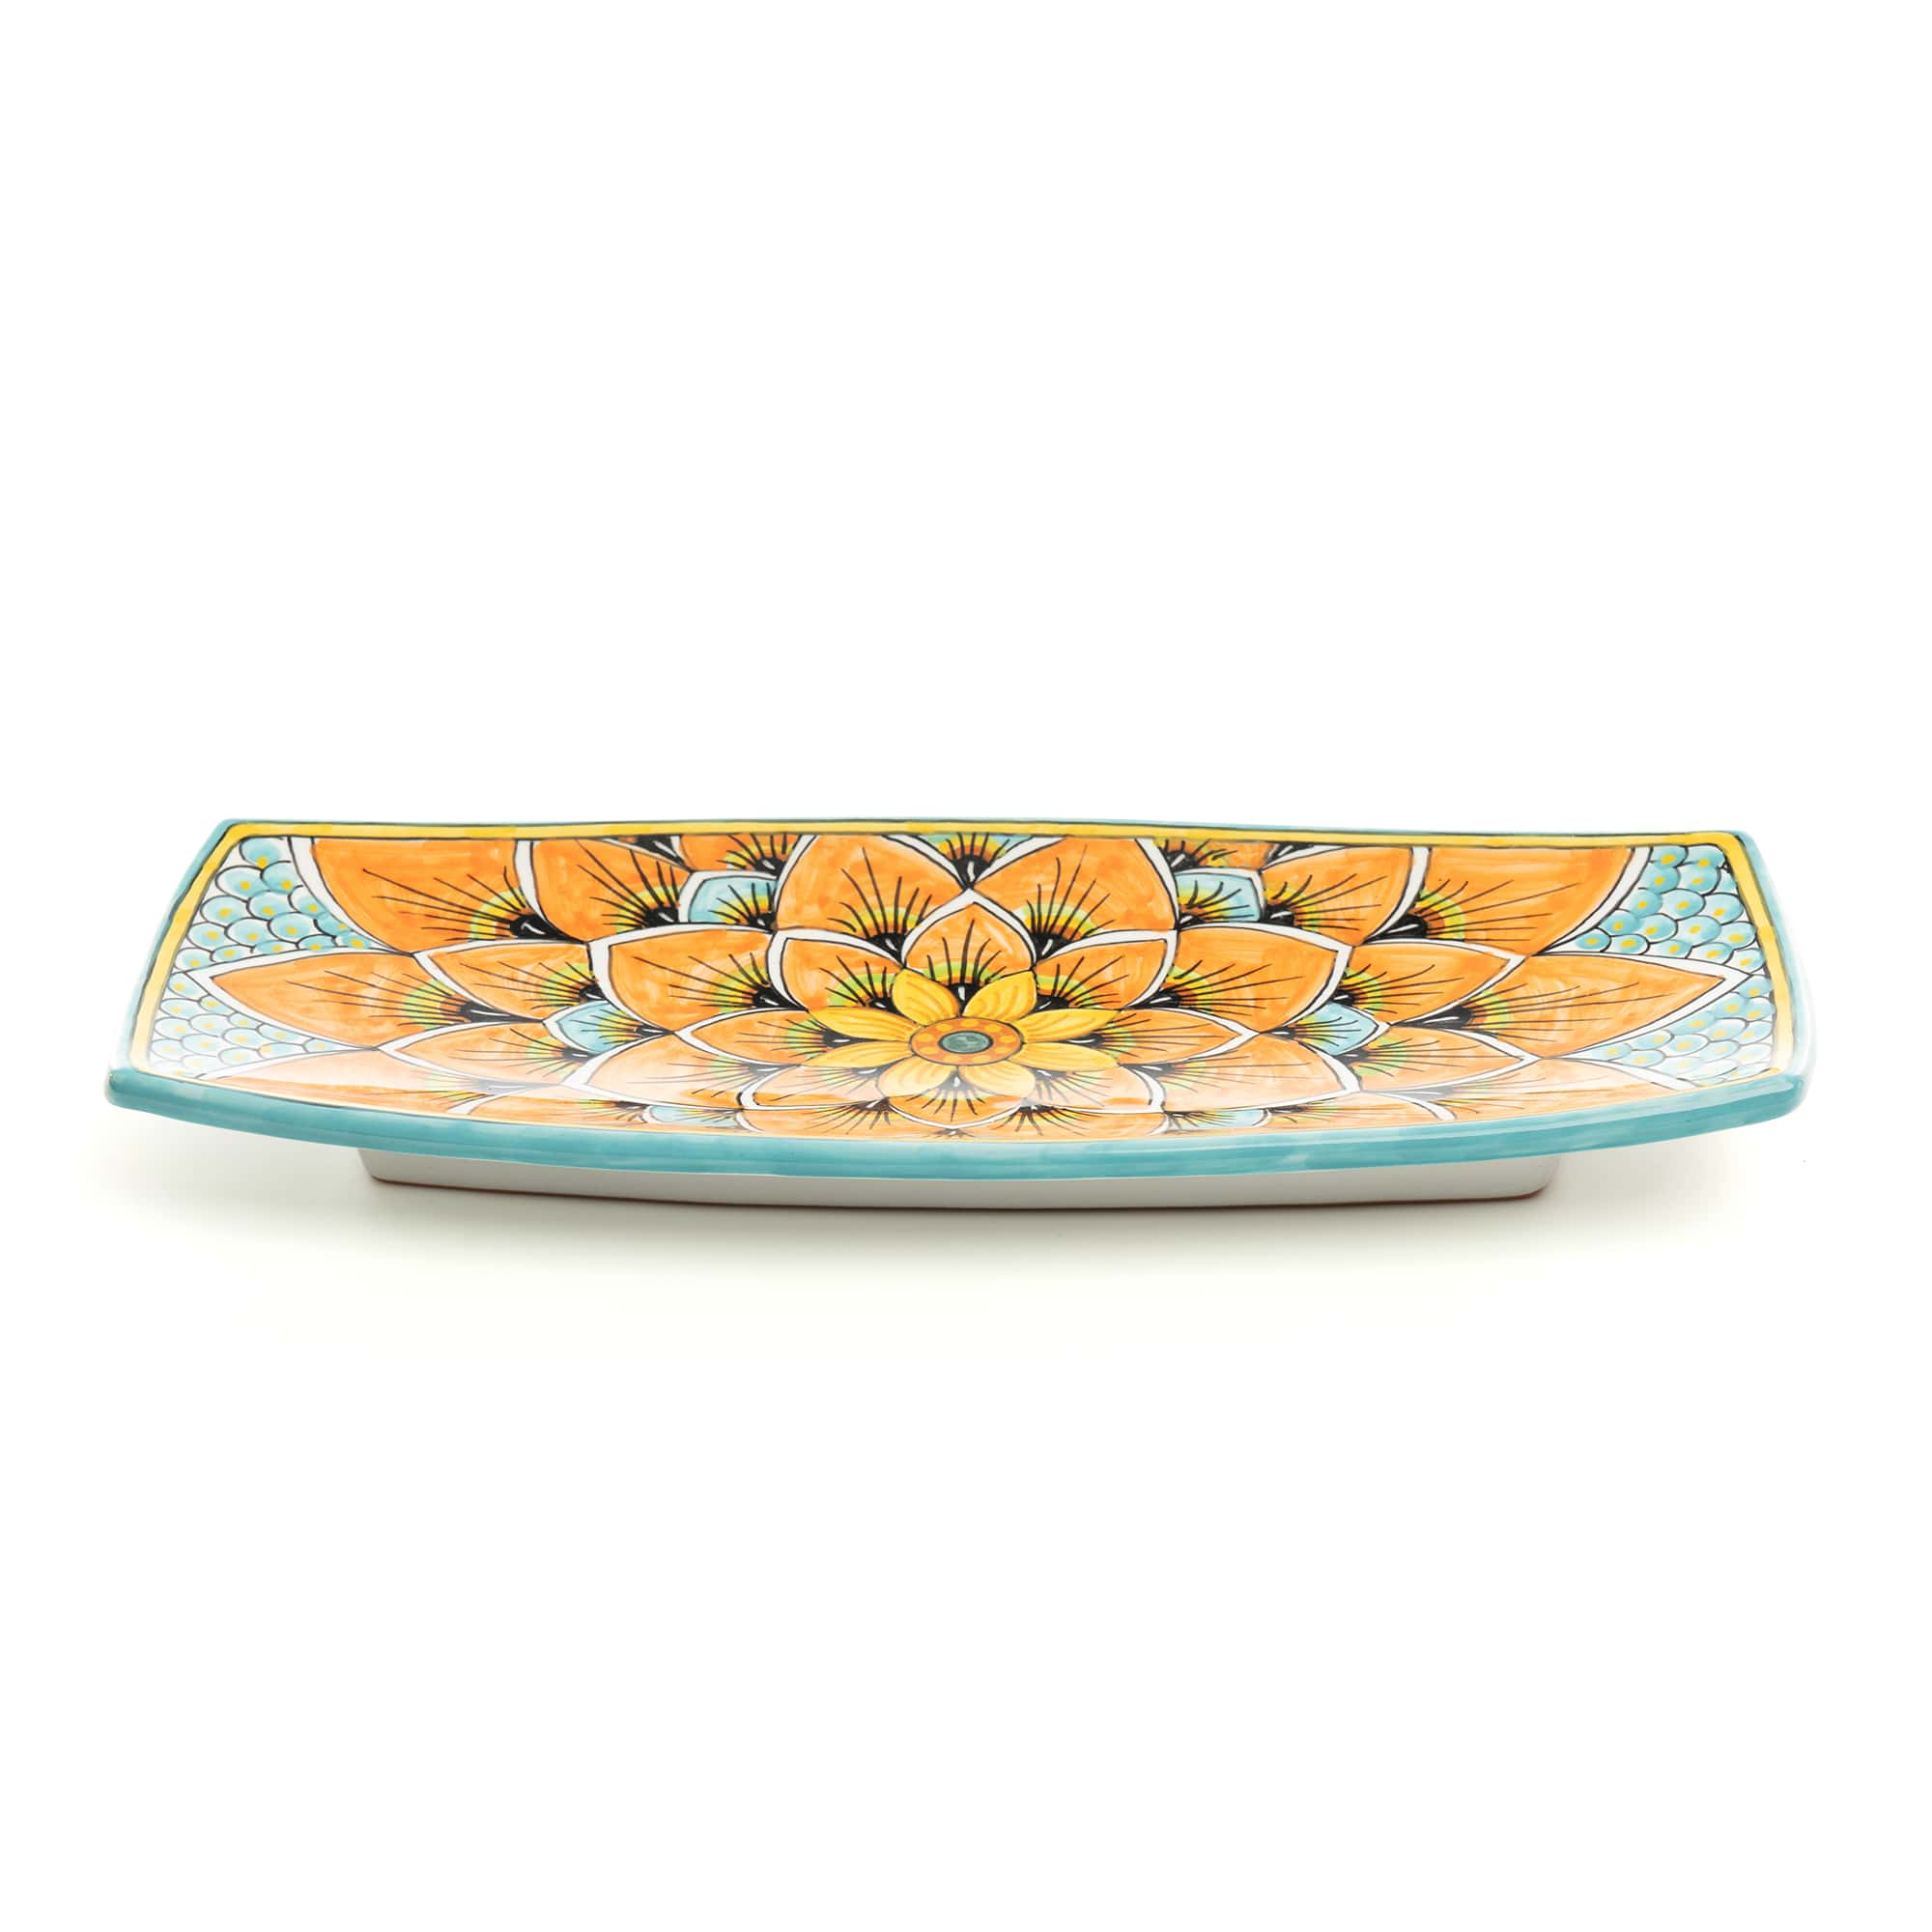 Rectangular Rounded Tray (PG06) in Orange and Blue Peacock Design